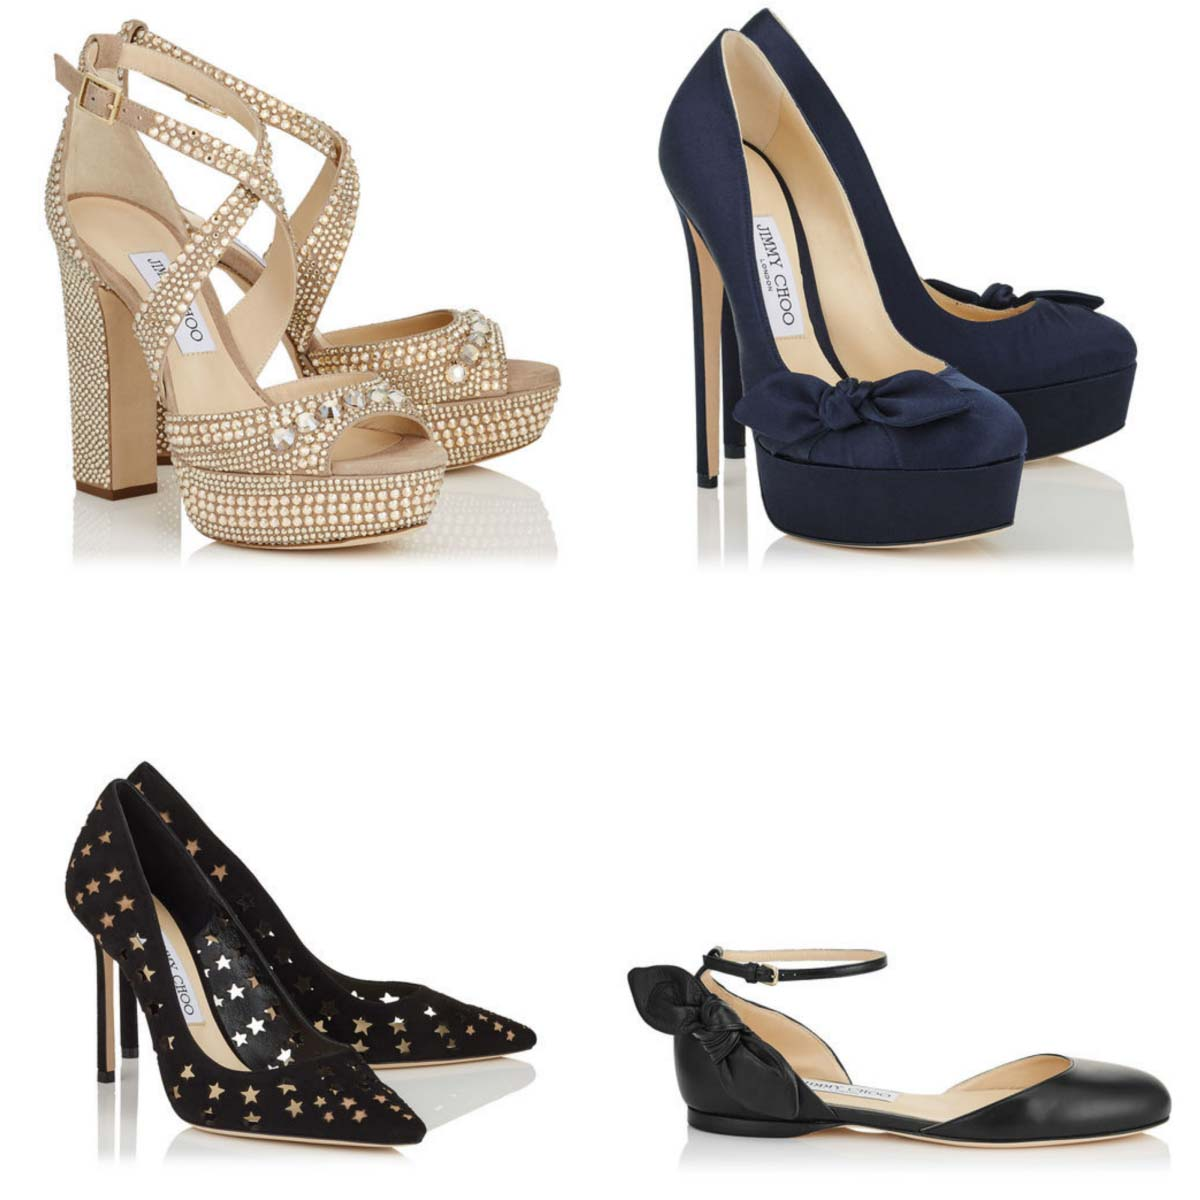 Jimmy Choo Latest Shoes and Handbags Collection 2017-2018 (16)